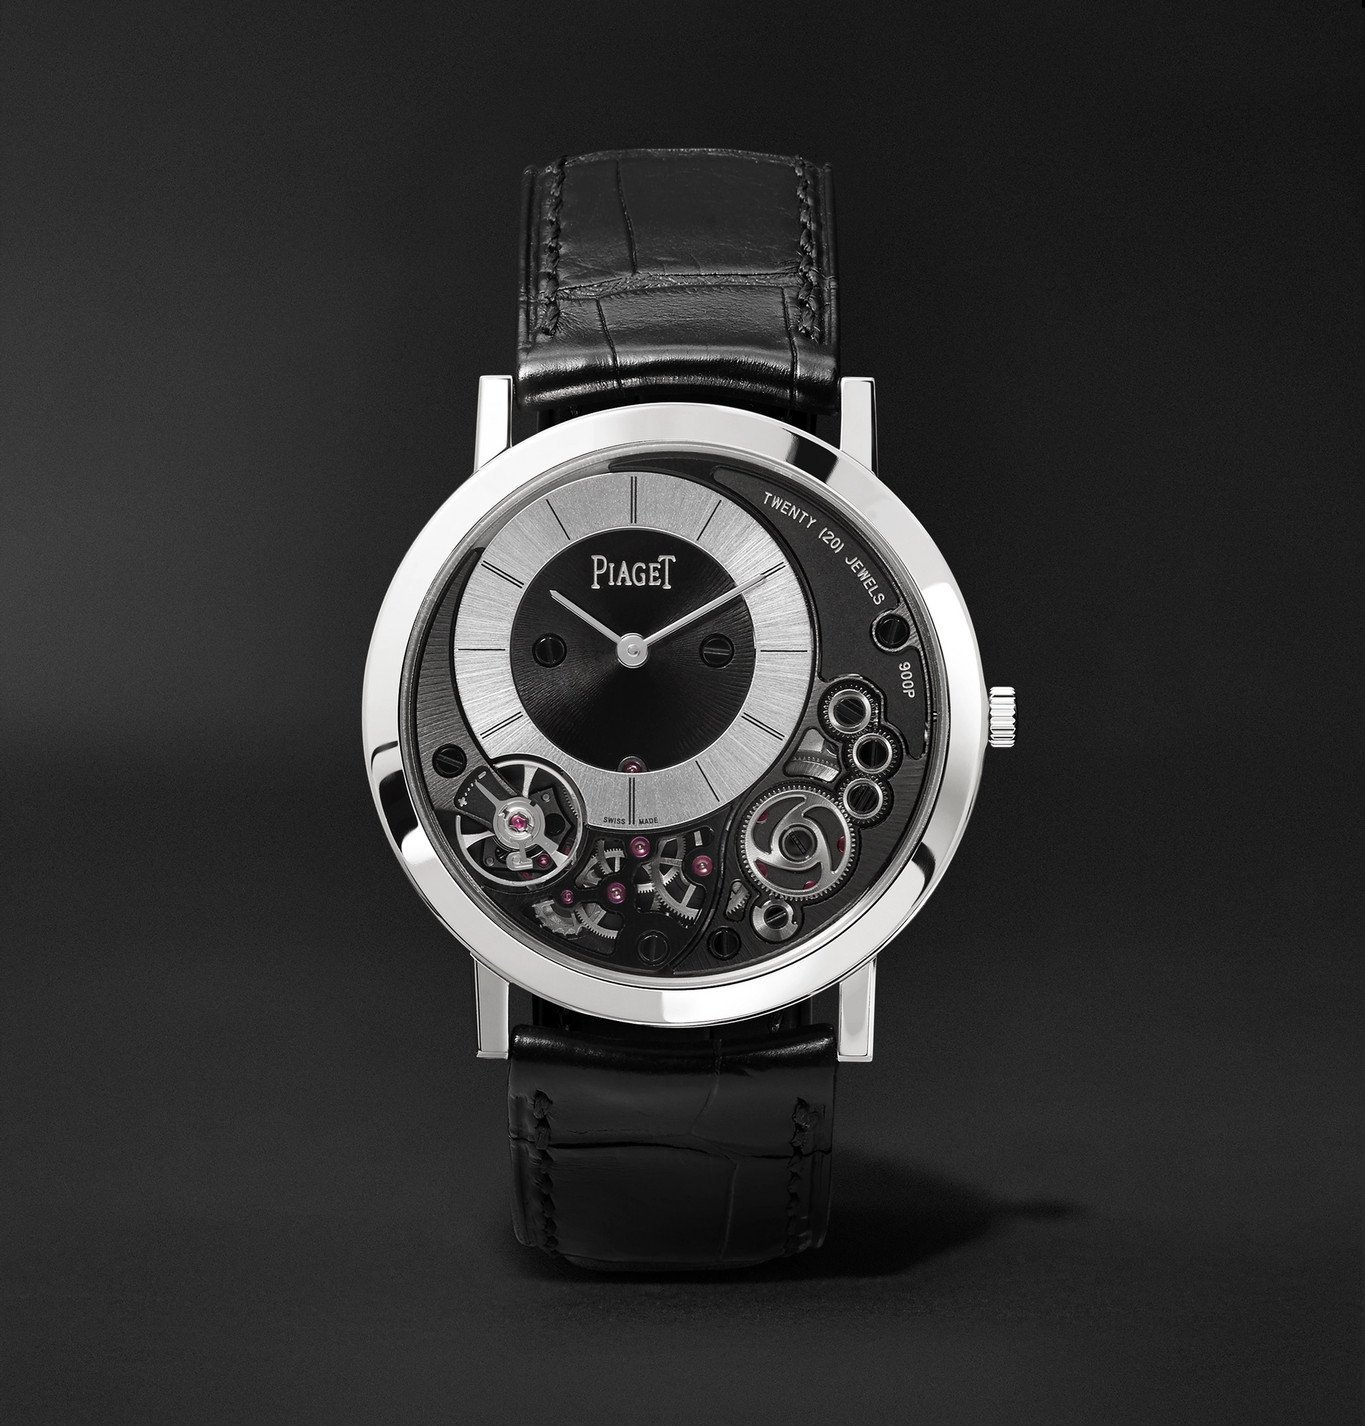 Photo: Piaget - Altiplano 38mm 18-Karat White Gold and Alligator Watch, Ref. No. G0A41035 - Black